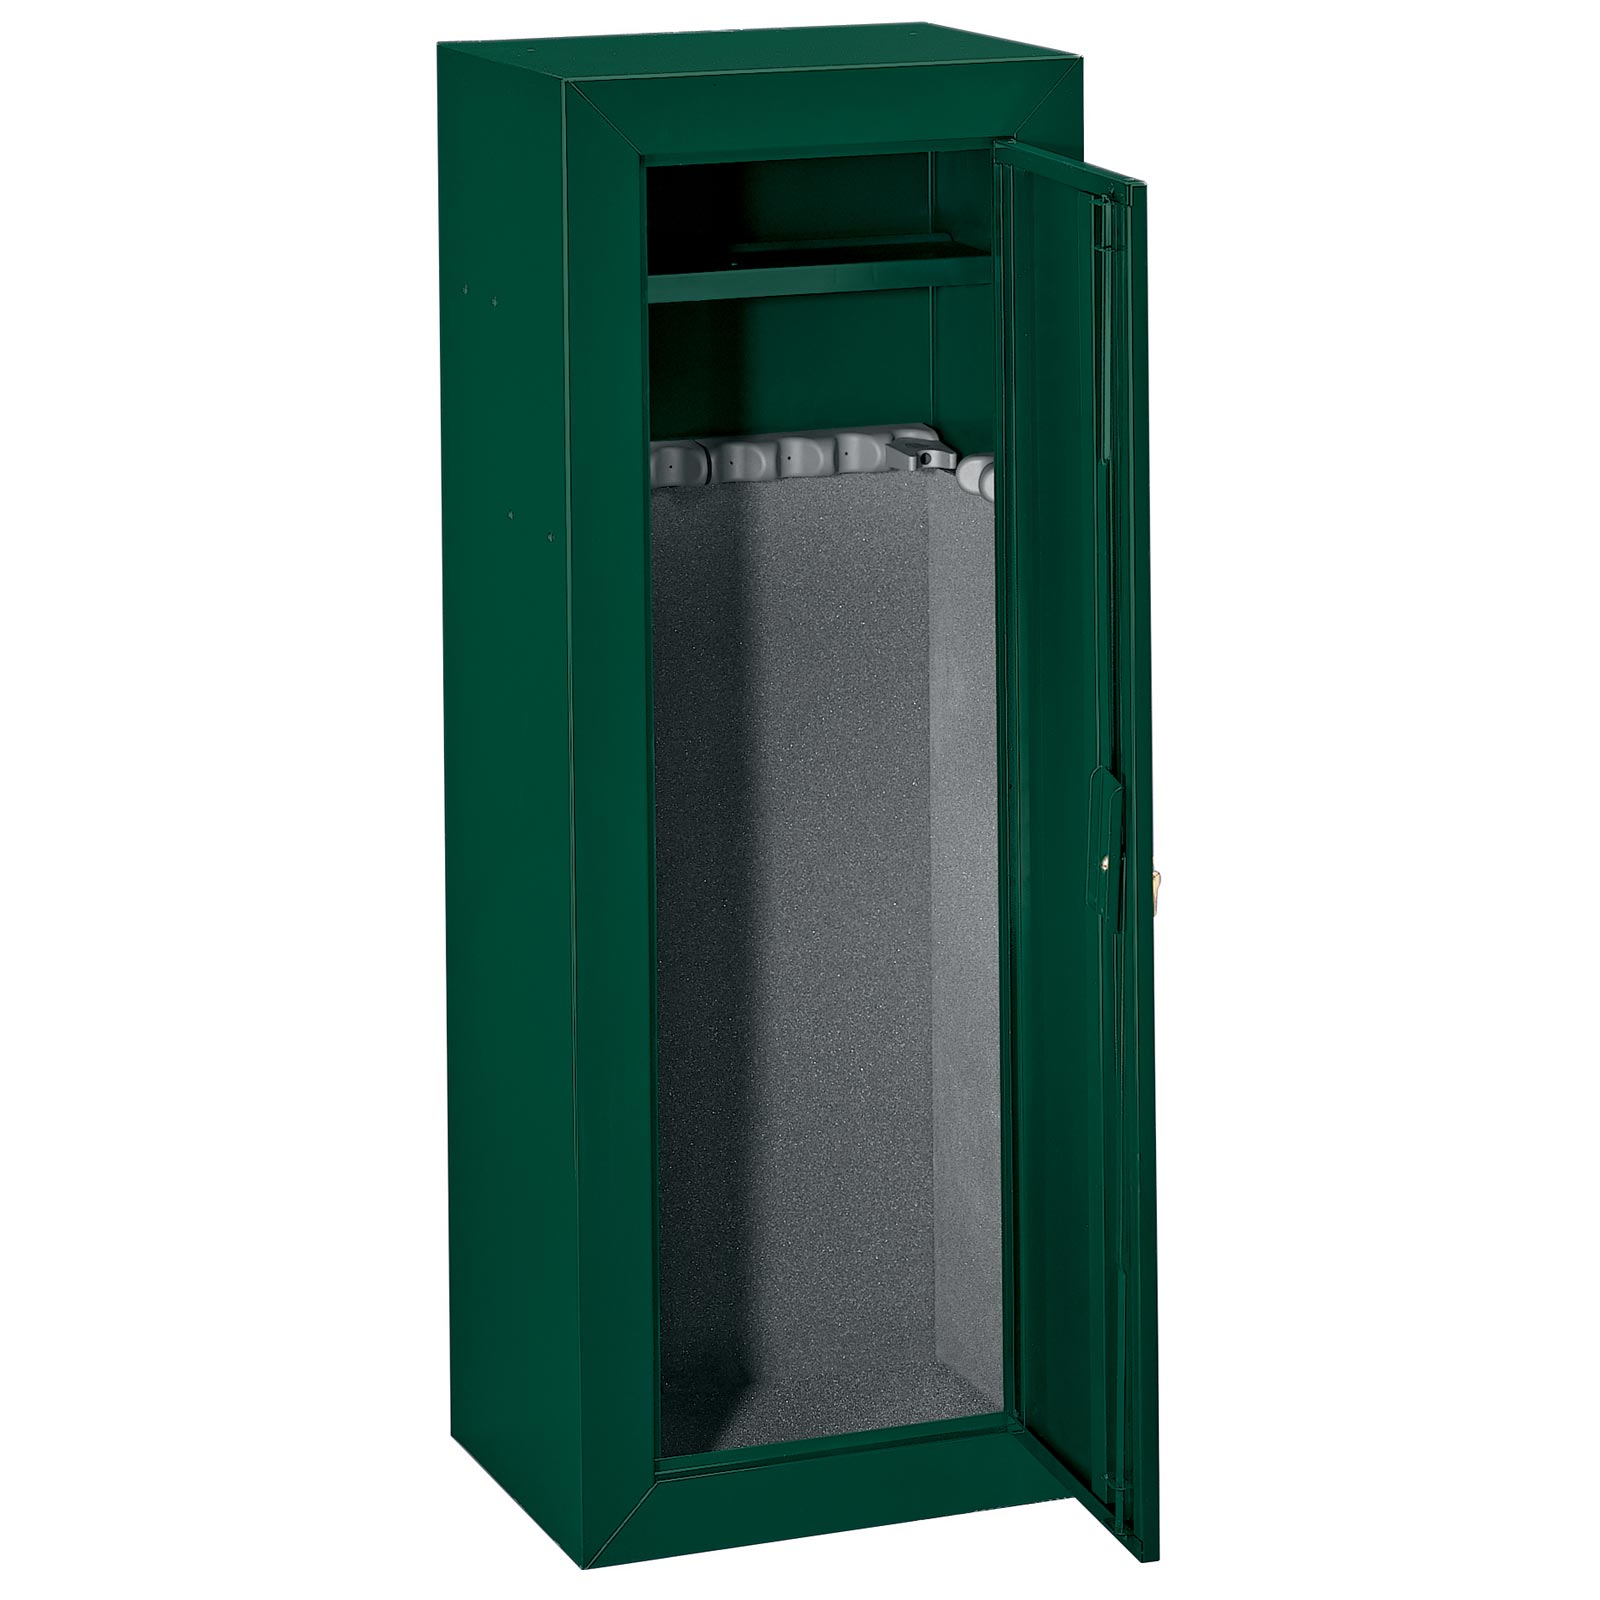 stack on 14 gun security cabinet stack on gcg 914 security cabinet 14 gun gsgcg 914 26547